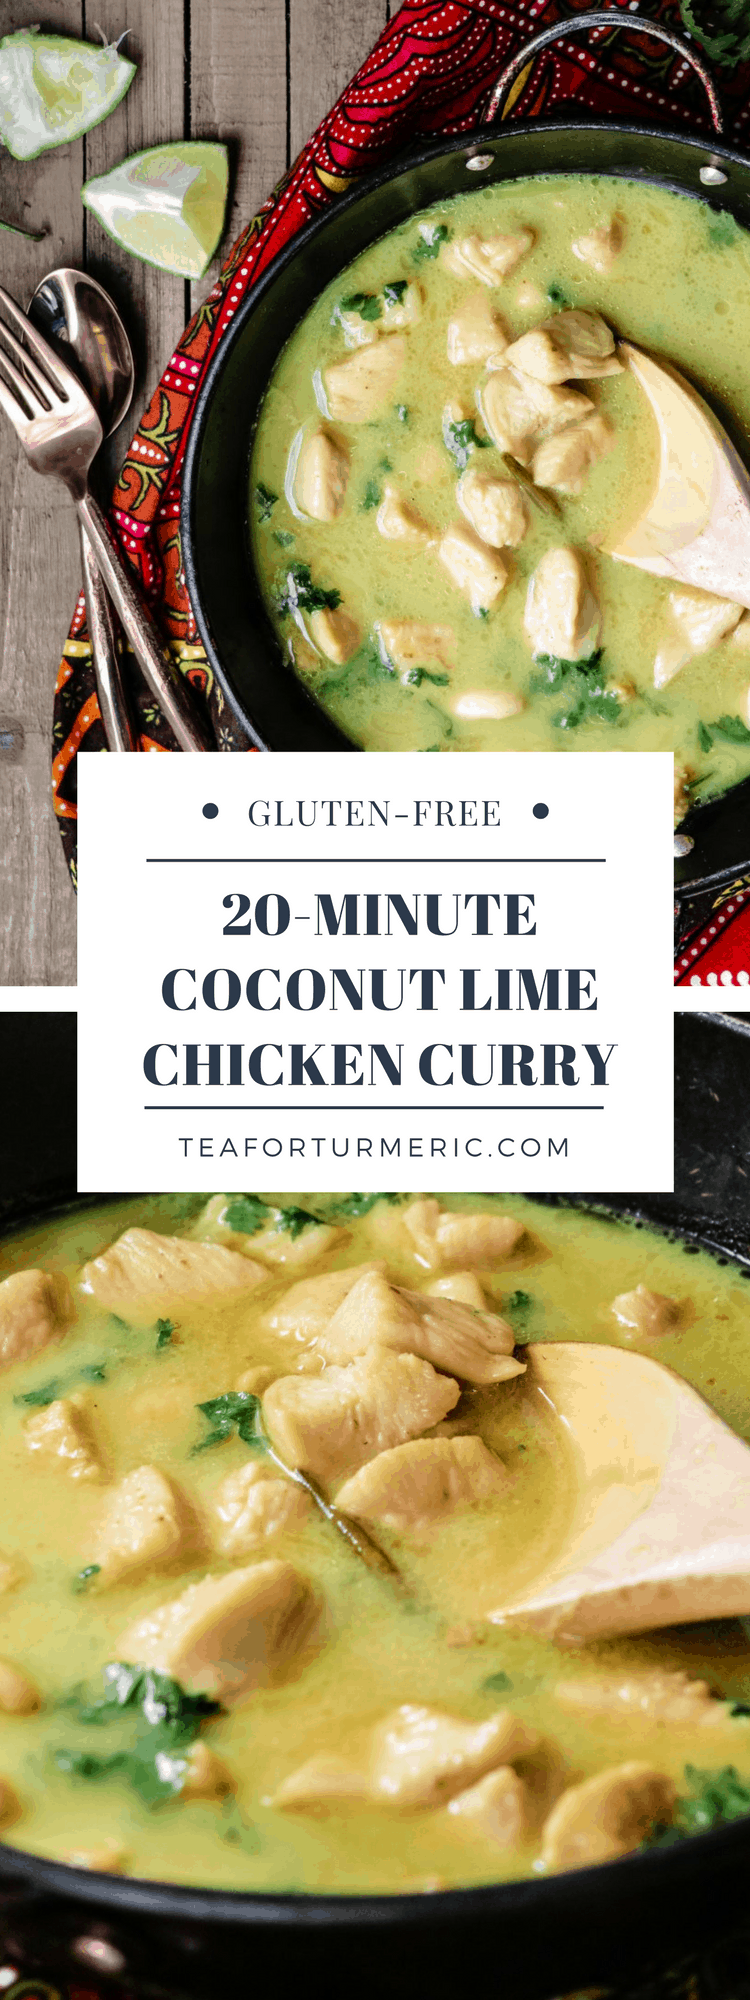 This 20-Minute Coconut Lime Chicken curry is the perfect weeknight meal. Incredibly easy and healthy, yet full of flavor!